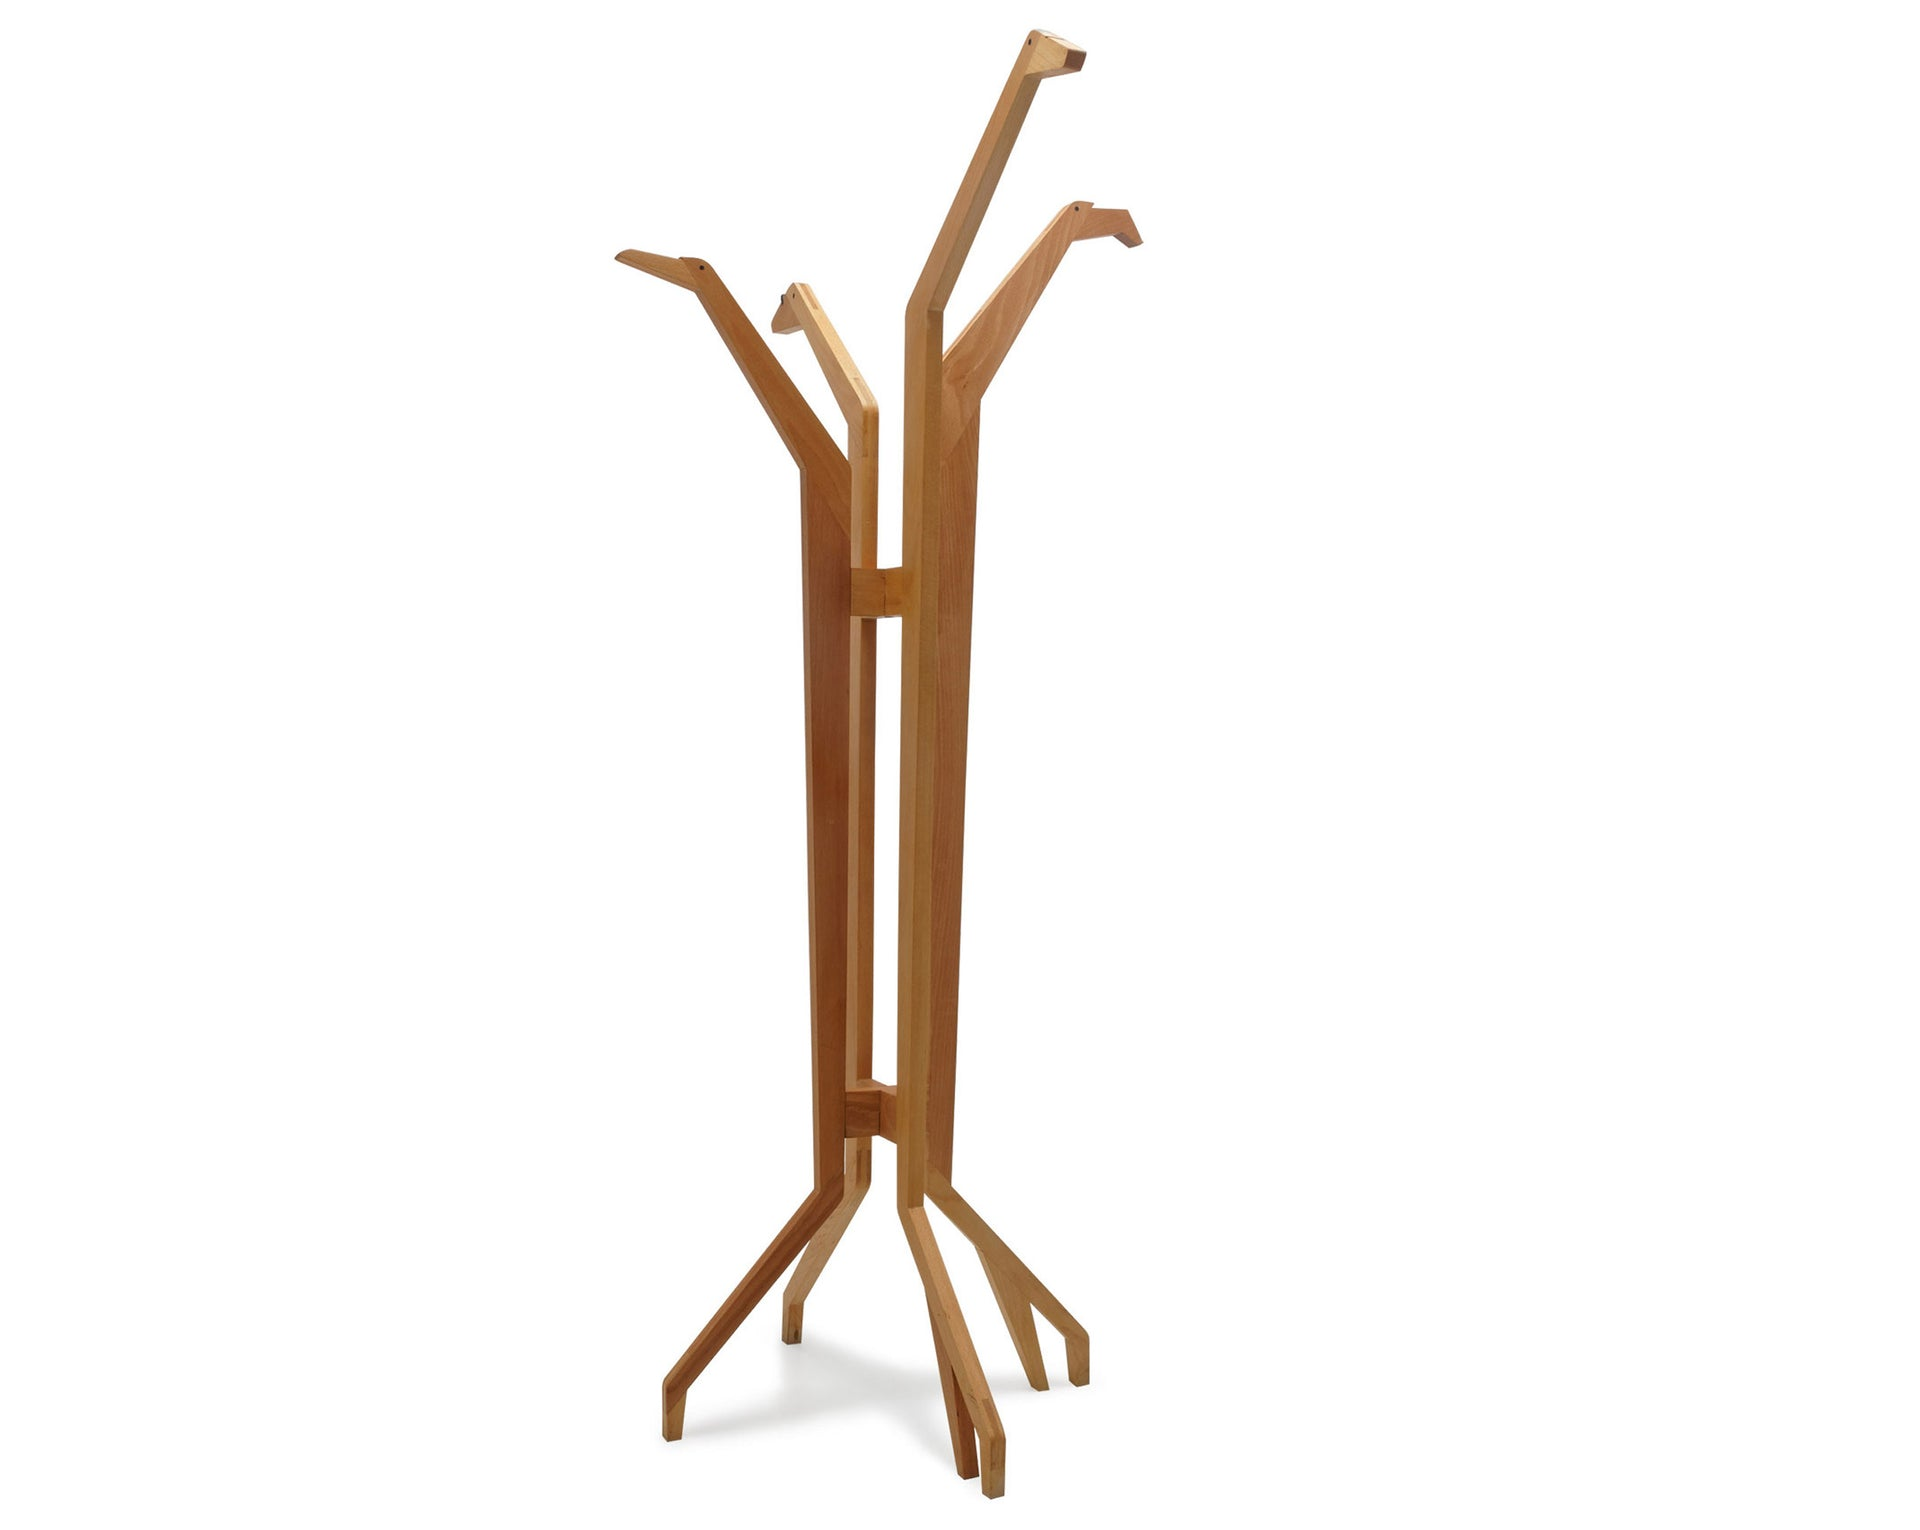 Flock Coat Hanger